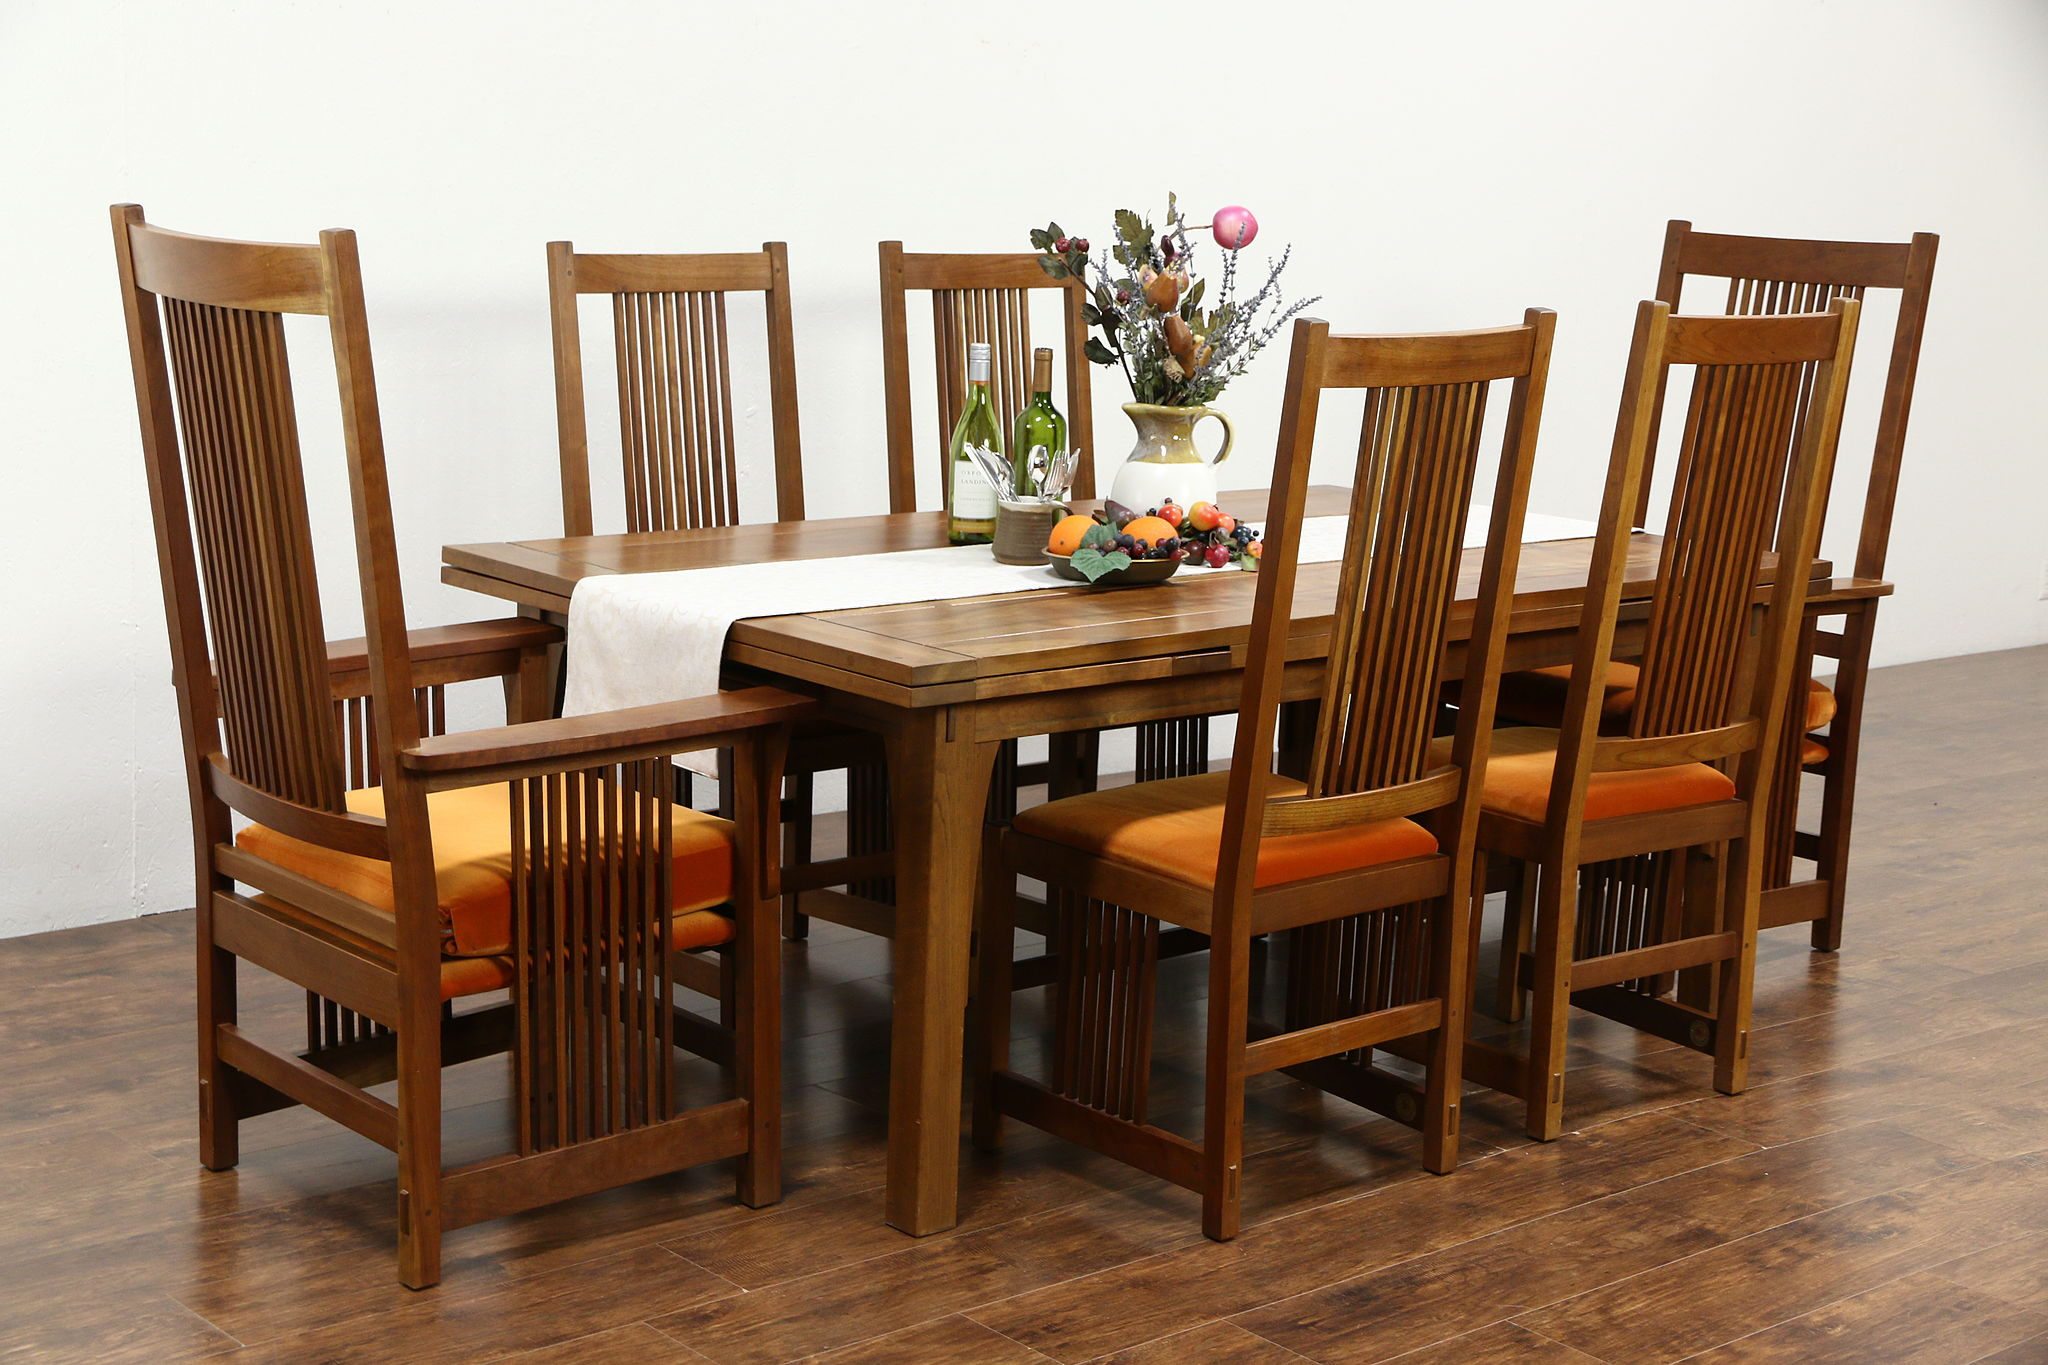 Stickley Signed Cherry Craftsman Design 1995 Dining Set Table Leaves 6 Chairs